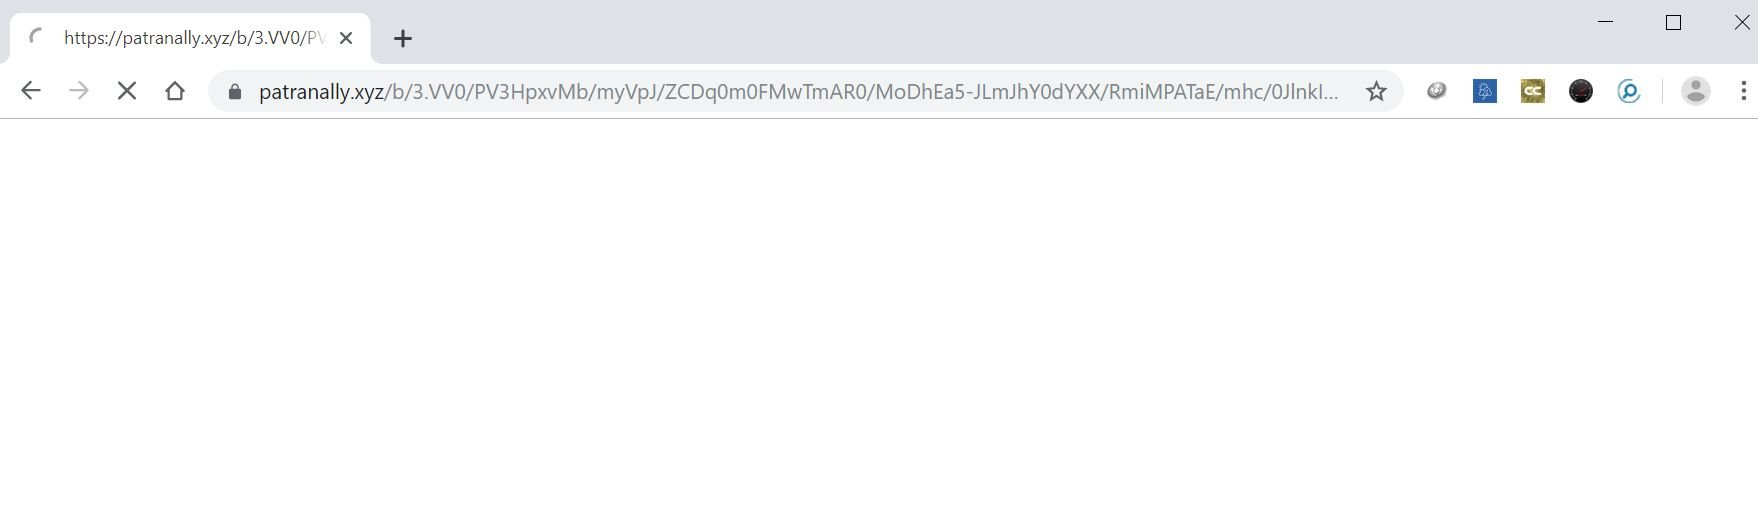 Image: Chrome browser is redirected to Patranally.xyz